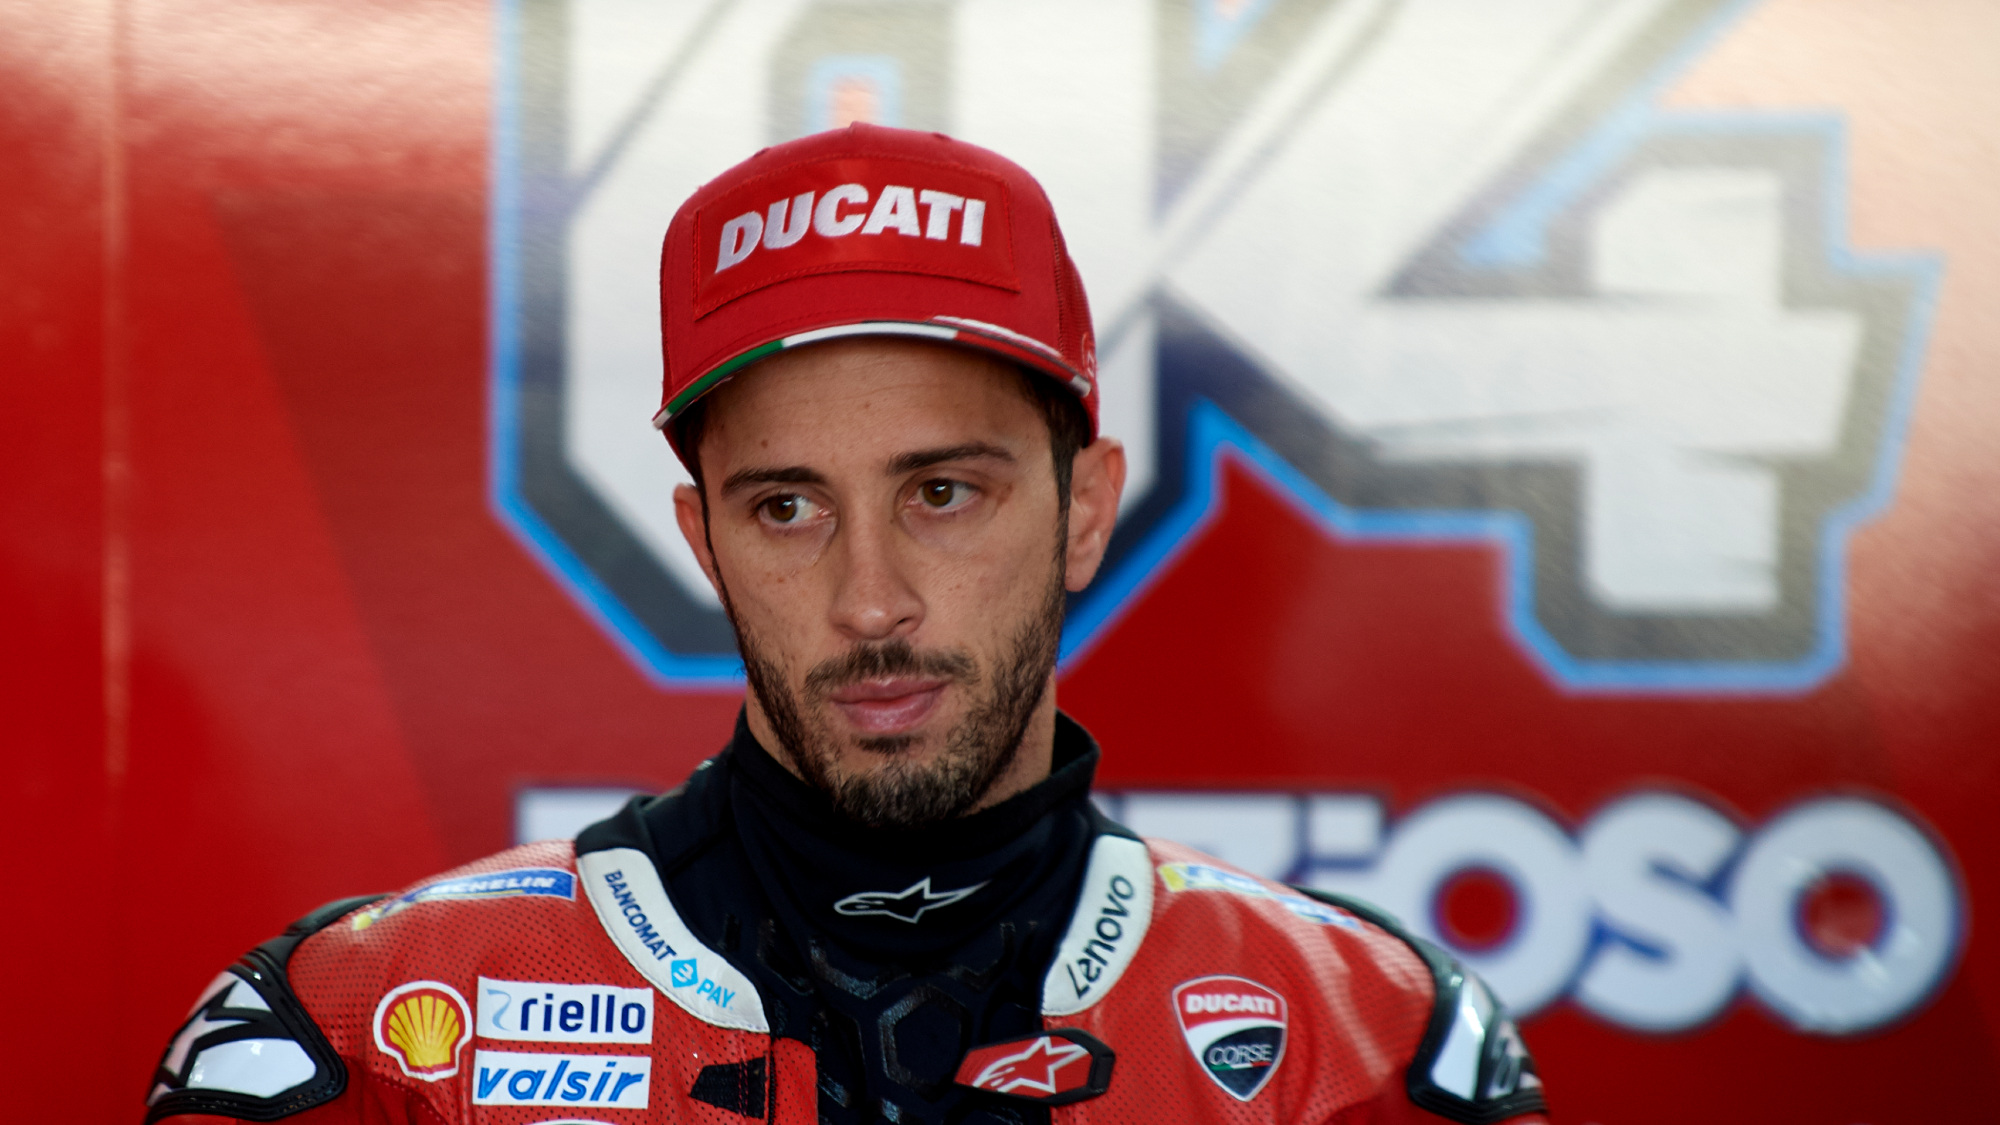 Dovizioso undergoes successful surgery after motorcross crash